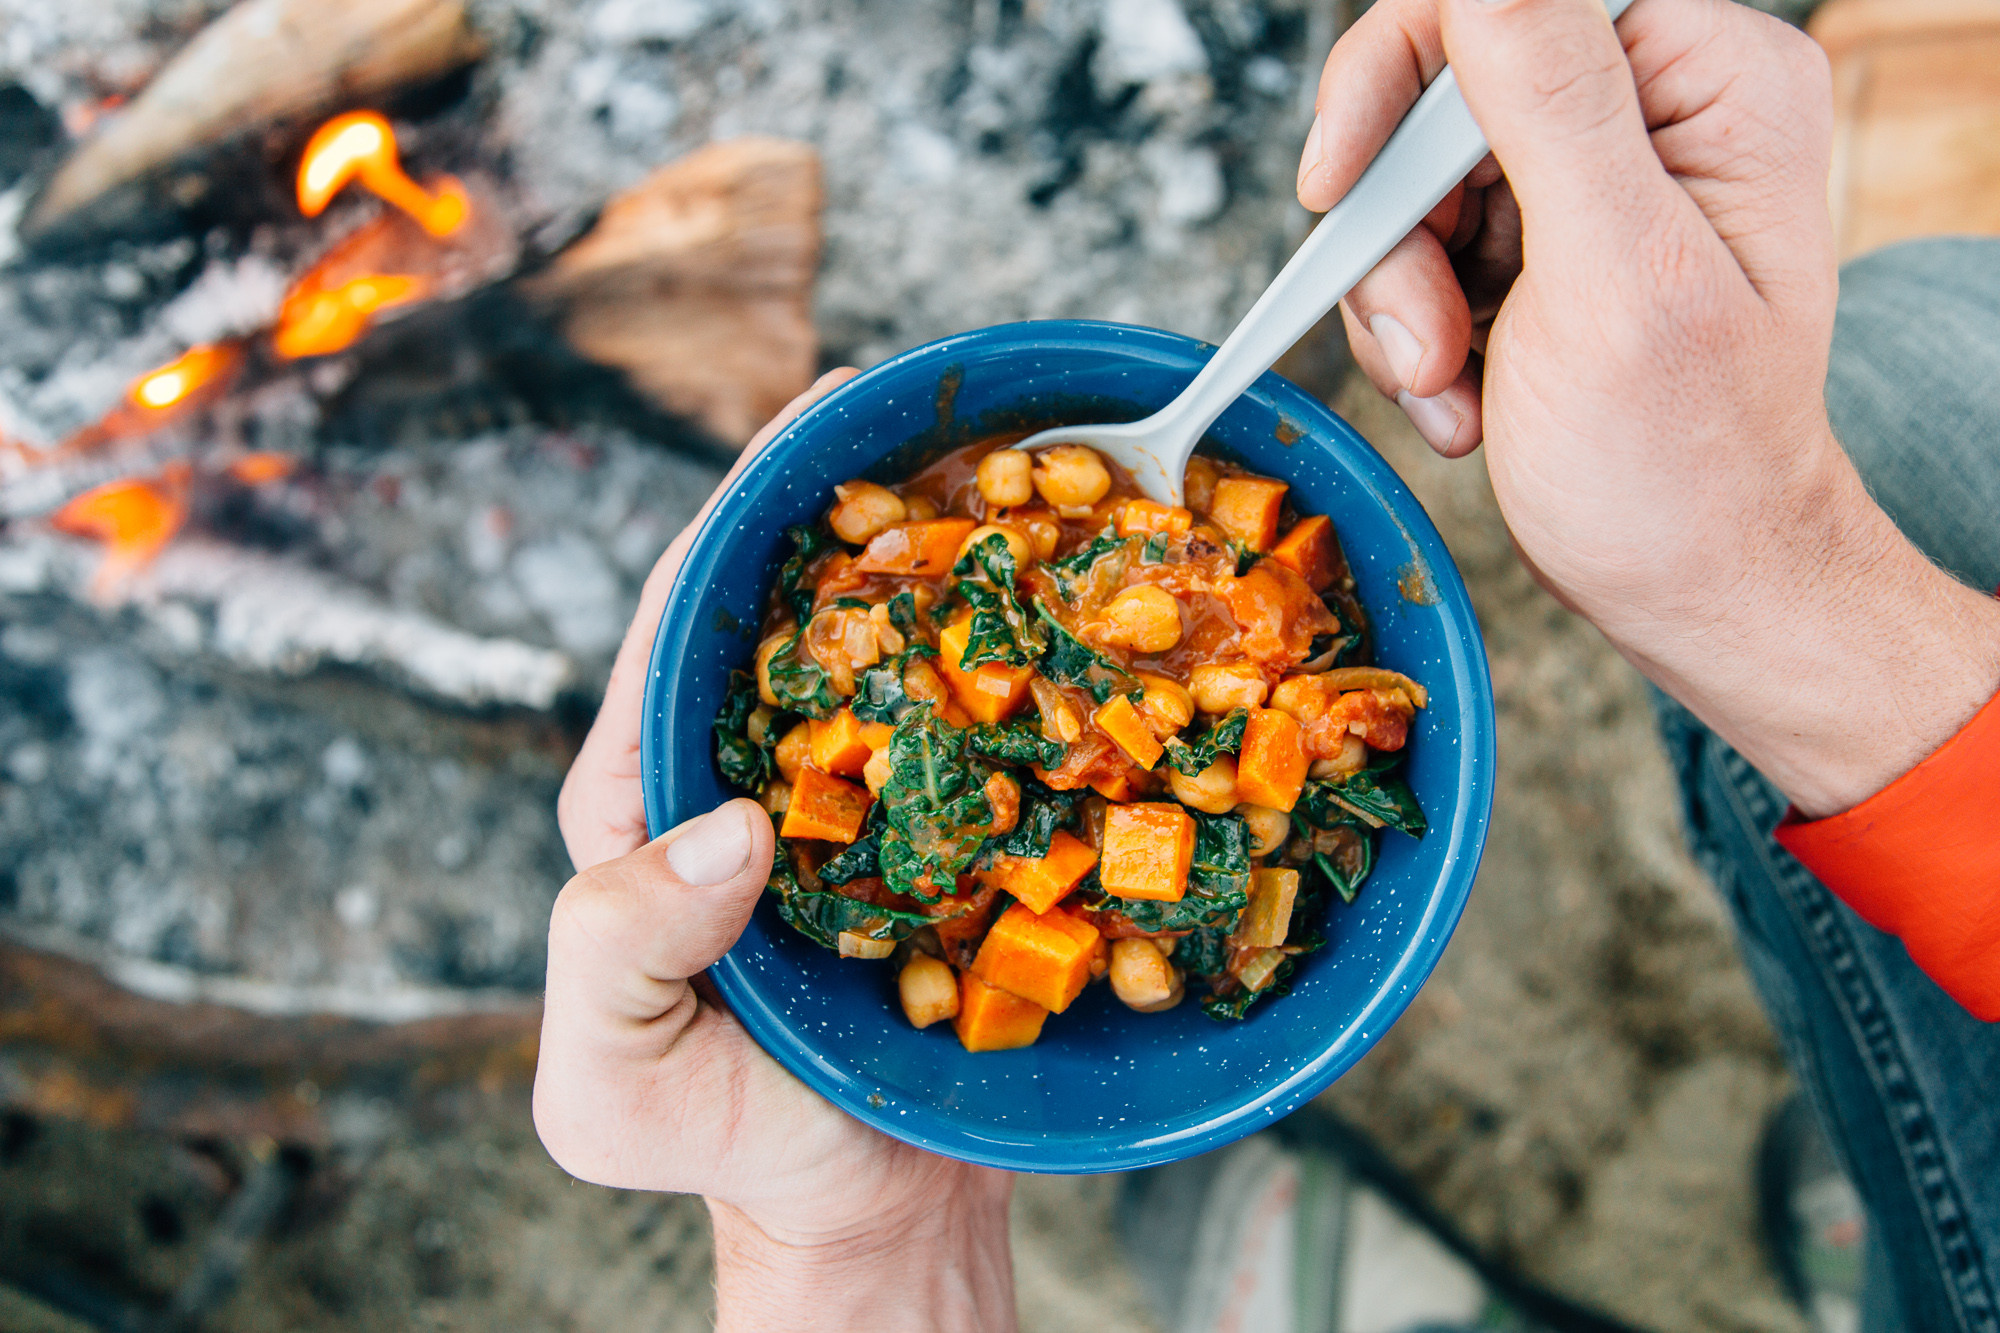 Winter Camping Food  Cozy Up with These 4 Winter Camping Recipes Therm a Rest